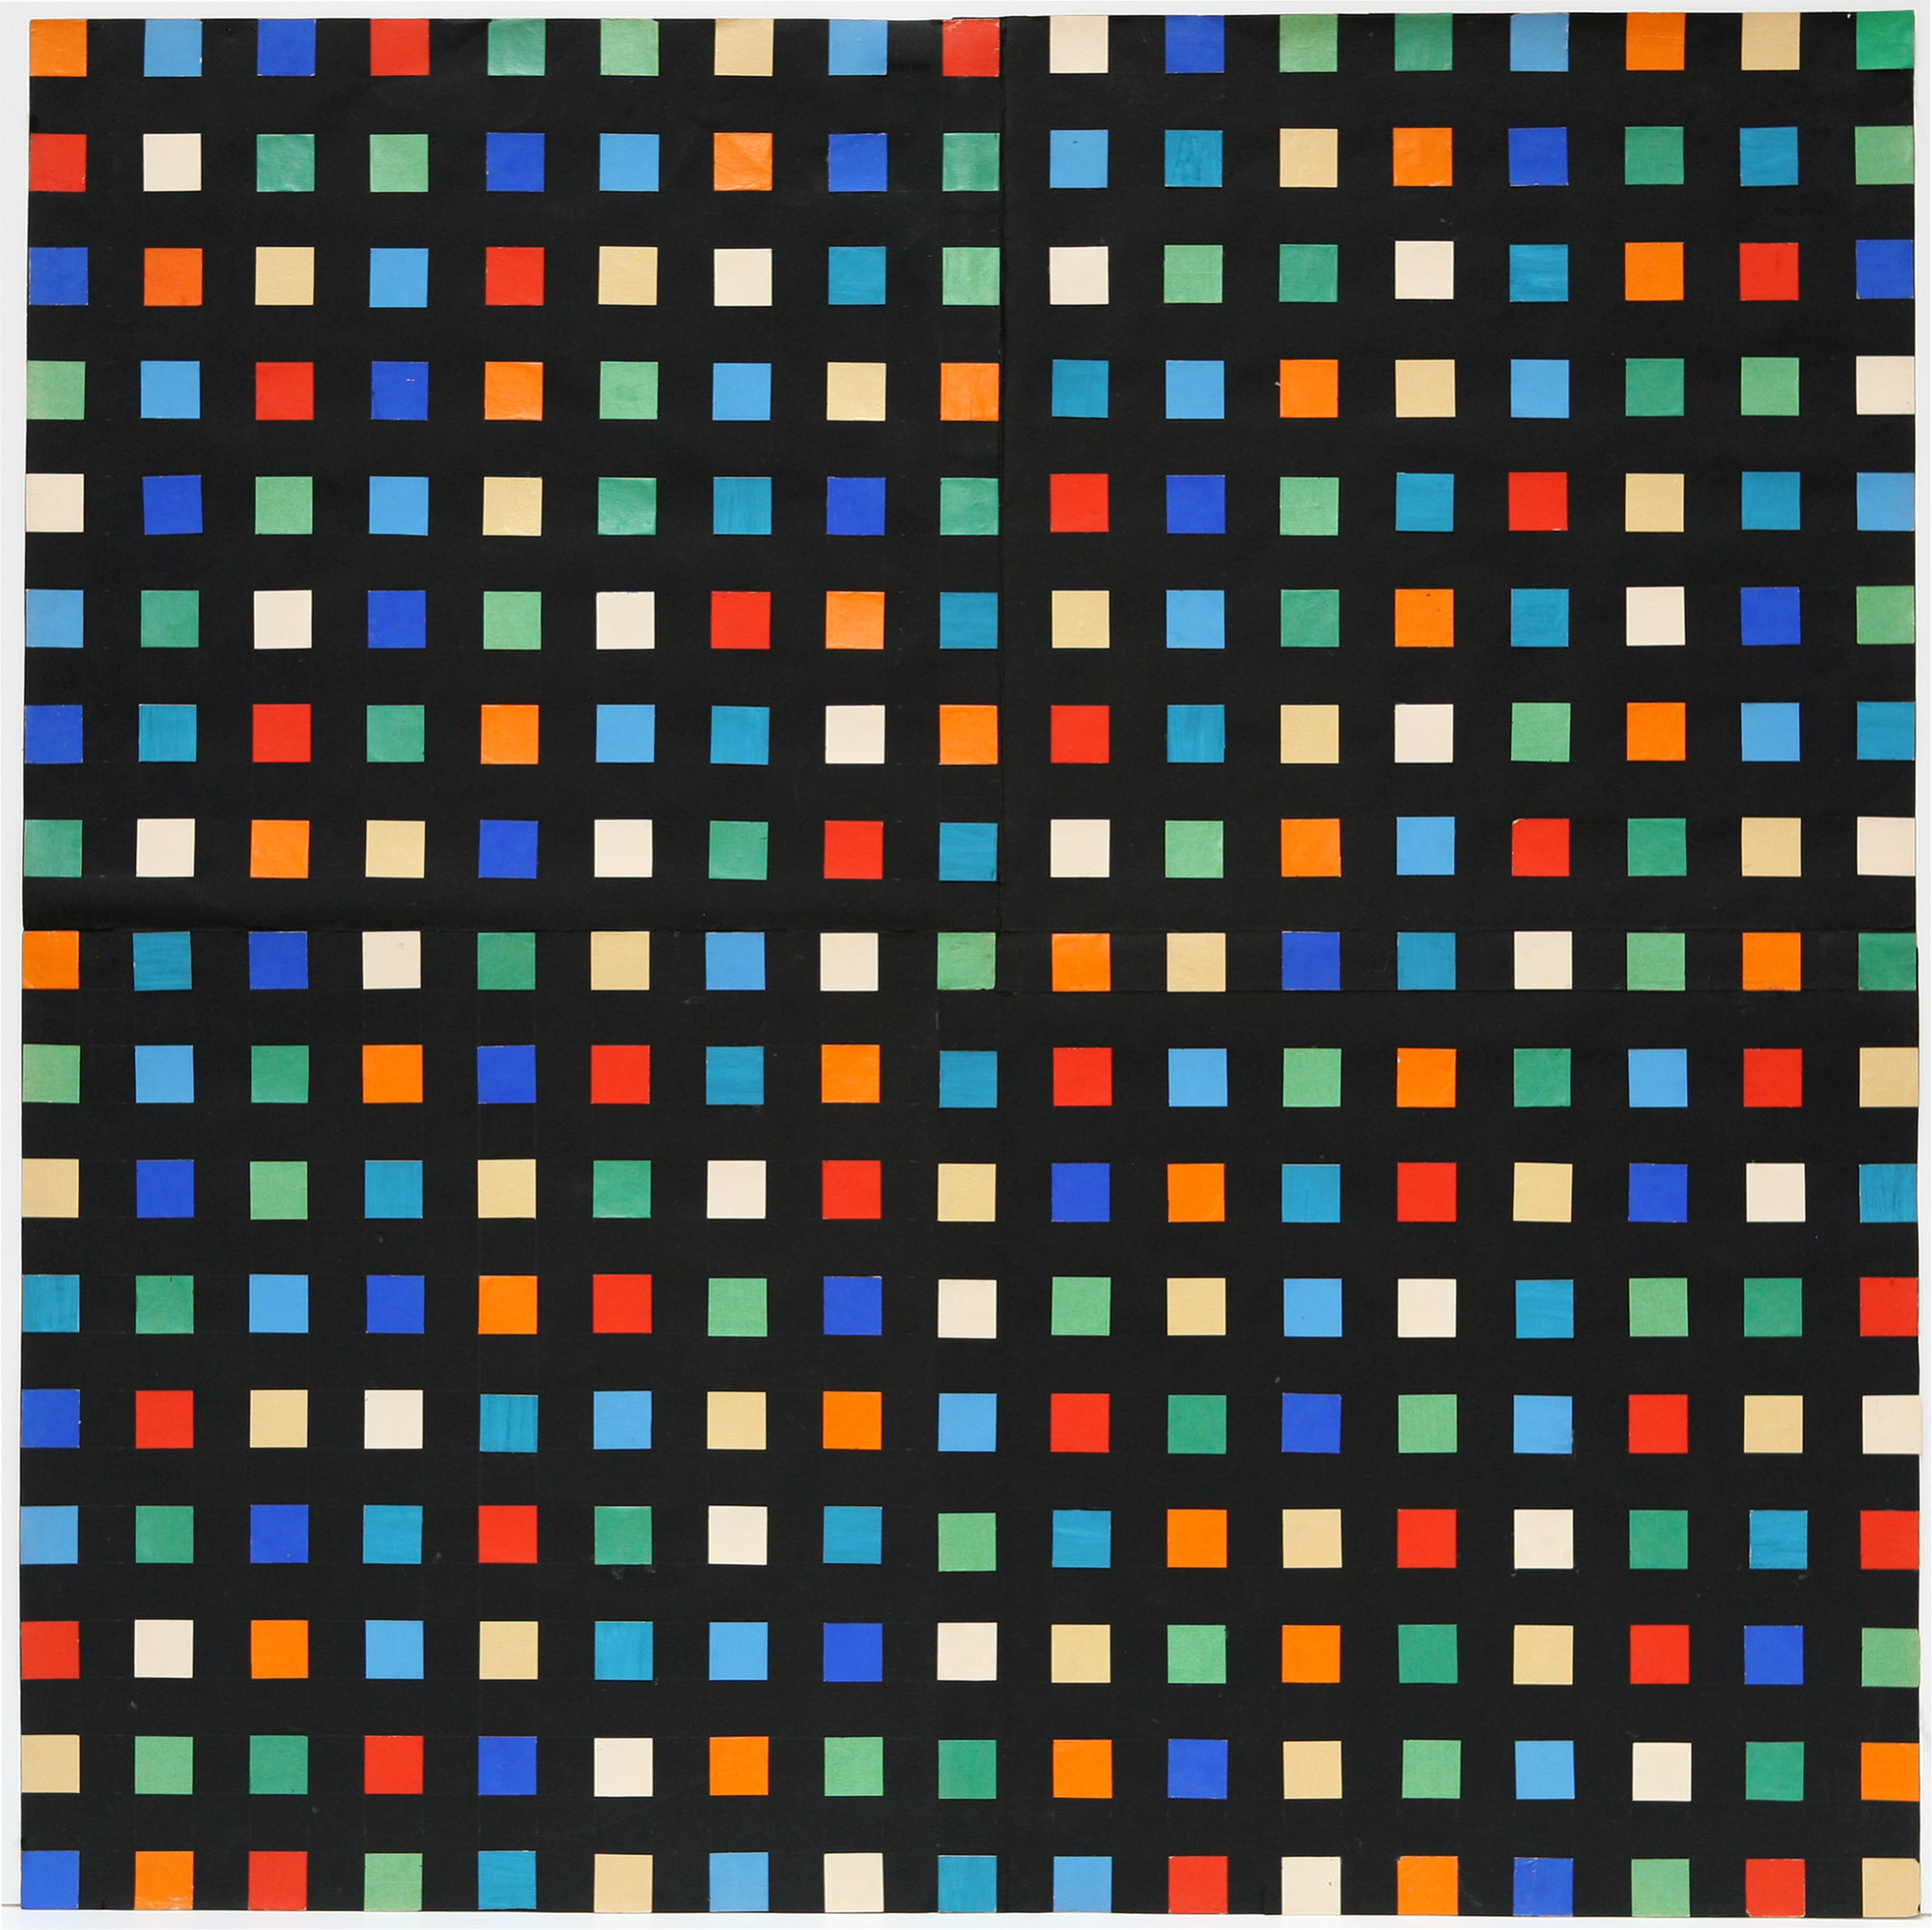 """Image of """"Spectrum Colors Arranged by Chance IX"""" by Ellsworth Kelly, a paper collage with a repeating pattern of bright colored small squares arranged in straight lines that run both vertically and horizontally over a dark background."""